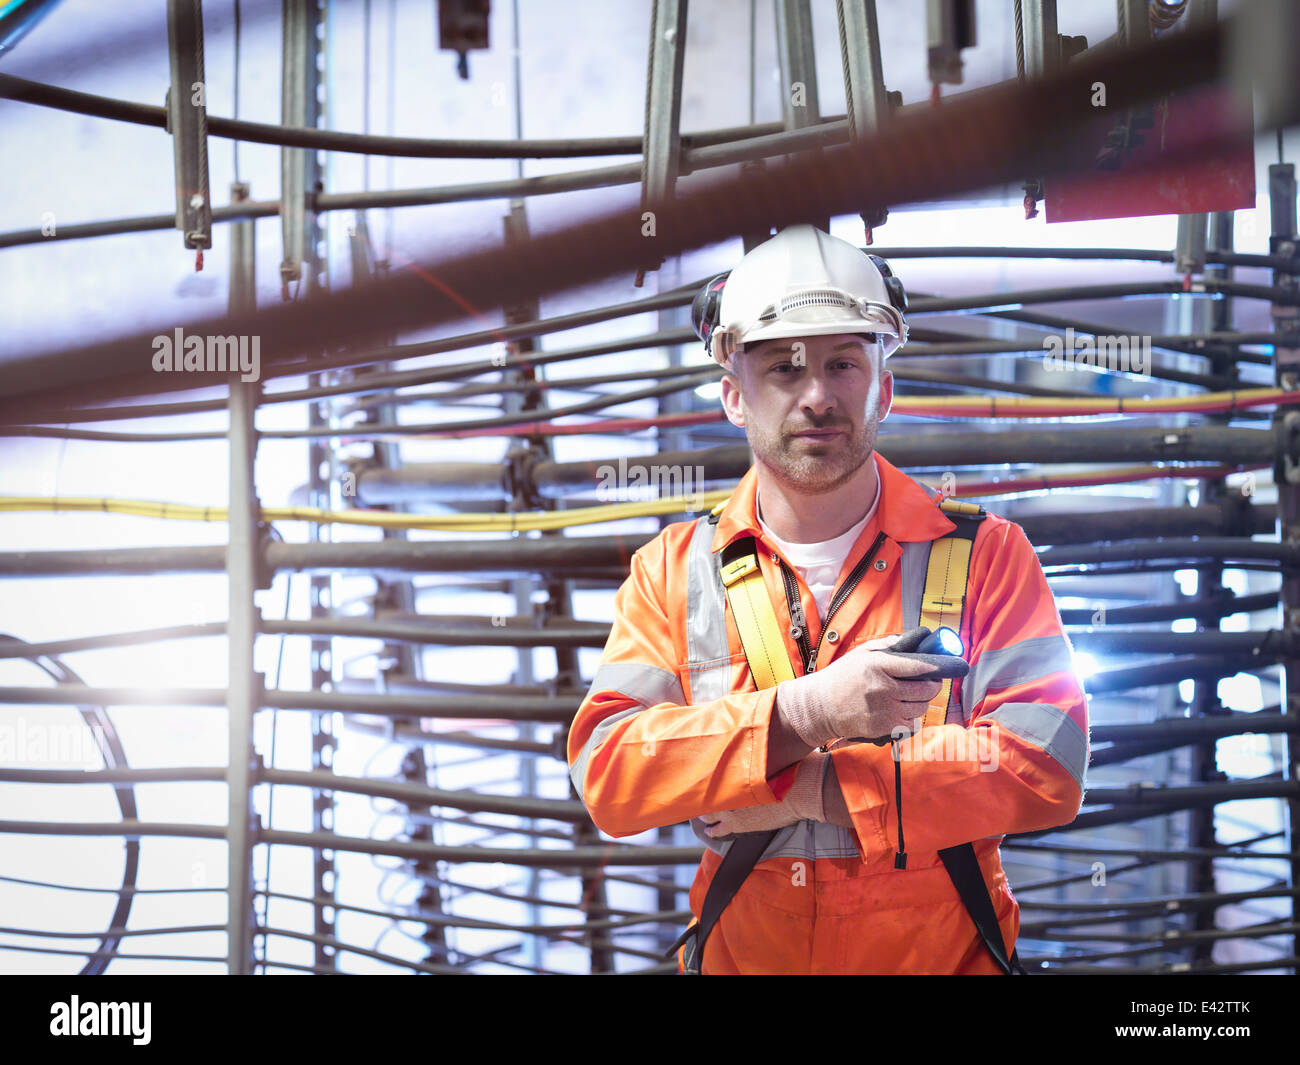 Engineer inspecting cable expansion in suspension bridge, portrait. The Humber Bridge, UK, built in 1981 - Stock Image